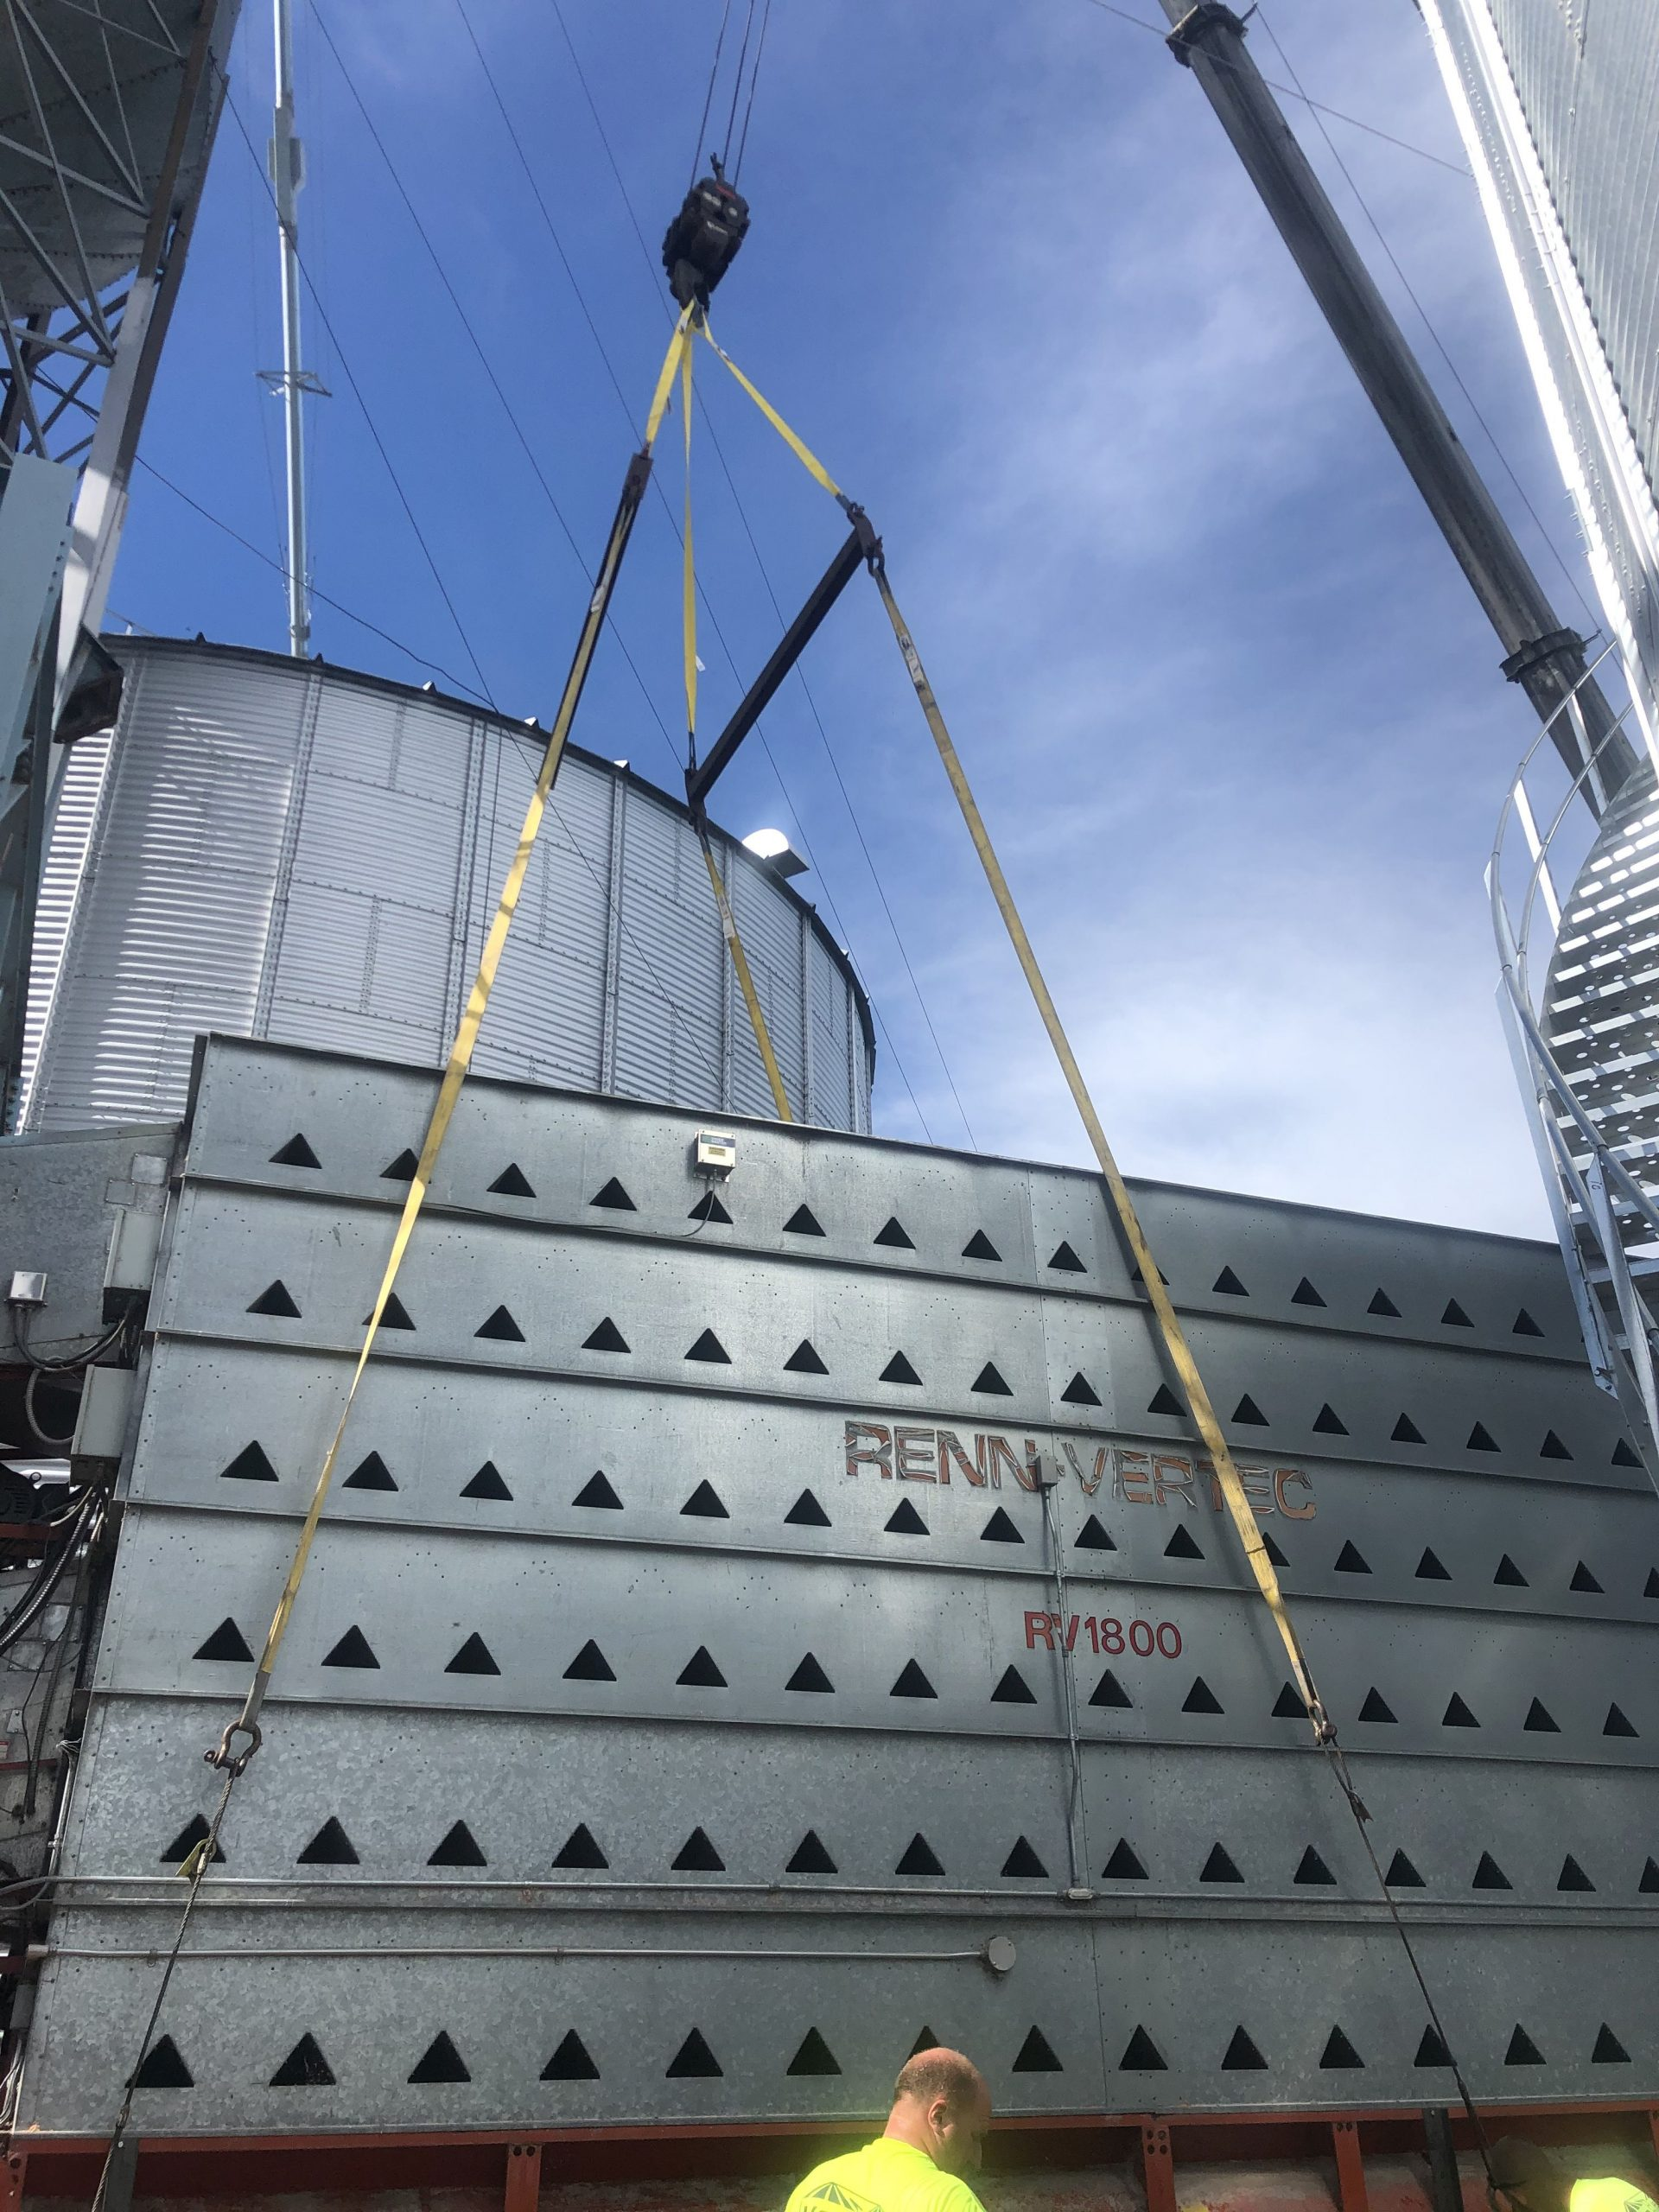 Lifting the old grain dryer